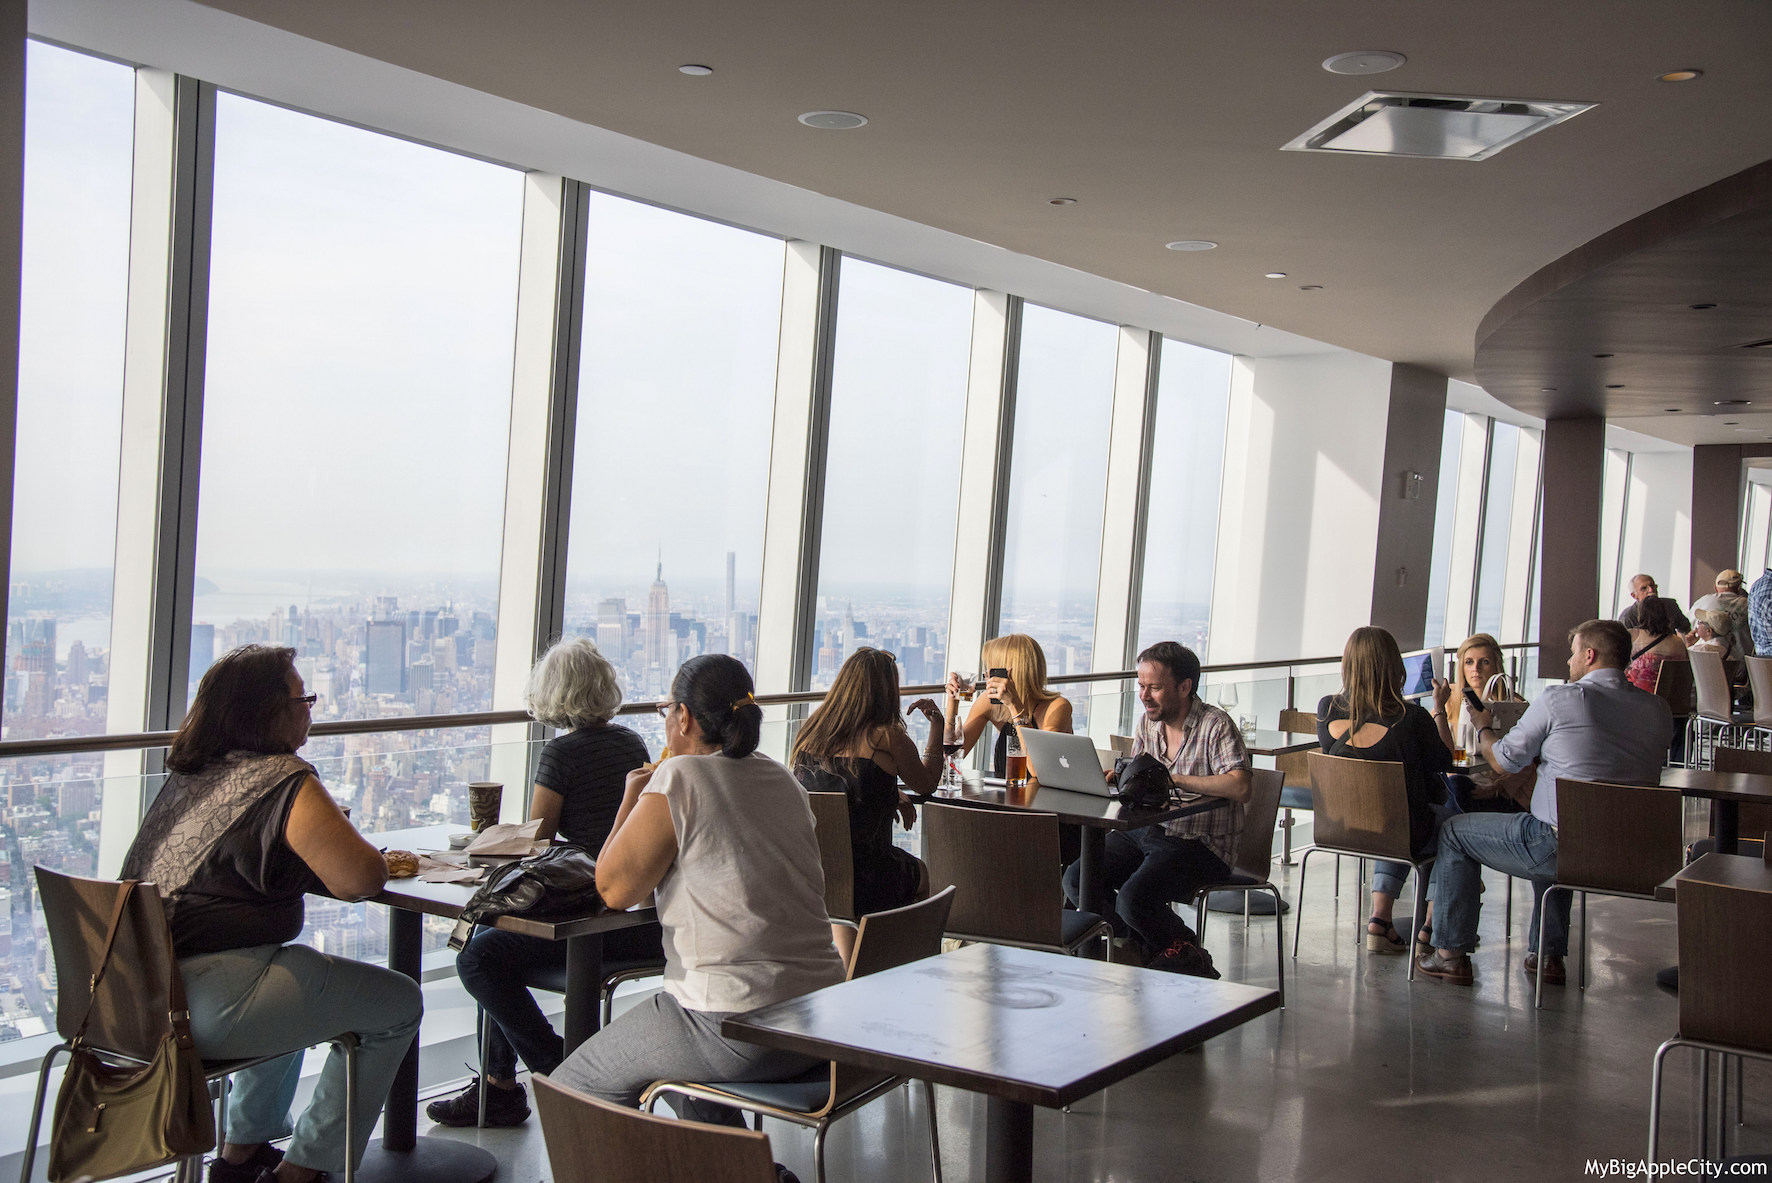 Visiter le one world observatory new yorkmybigapplecity for Interieur world trade center